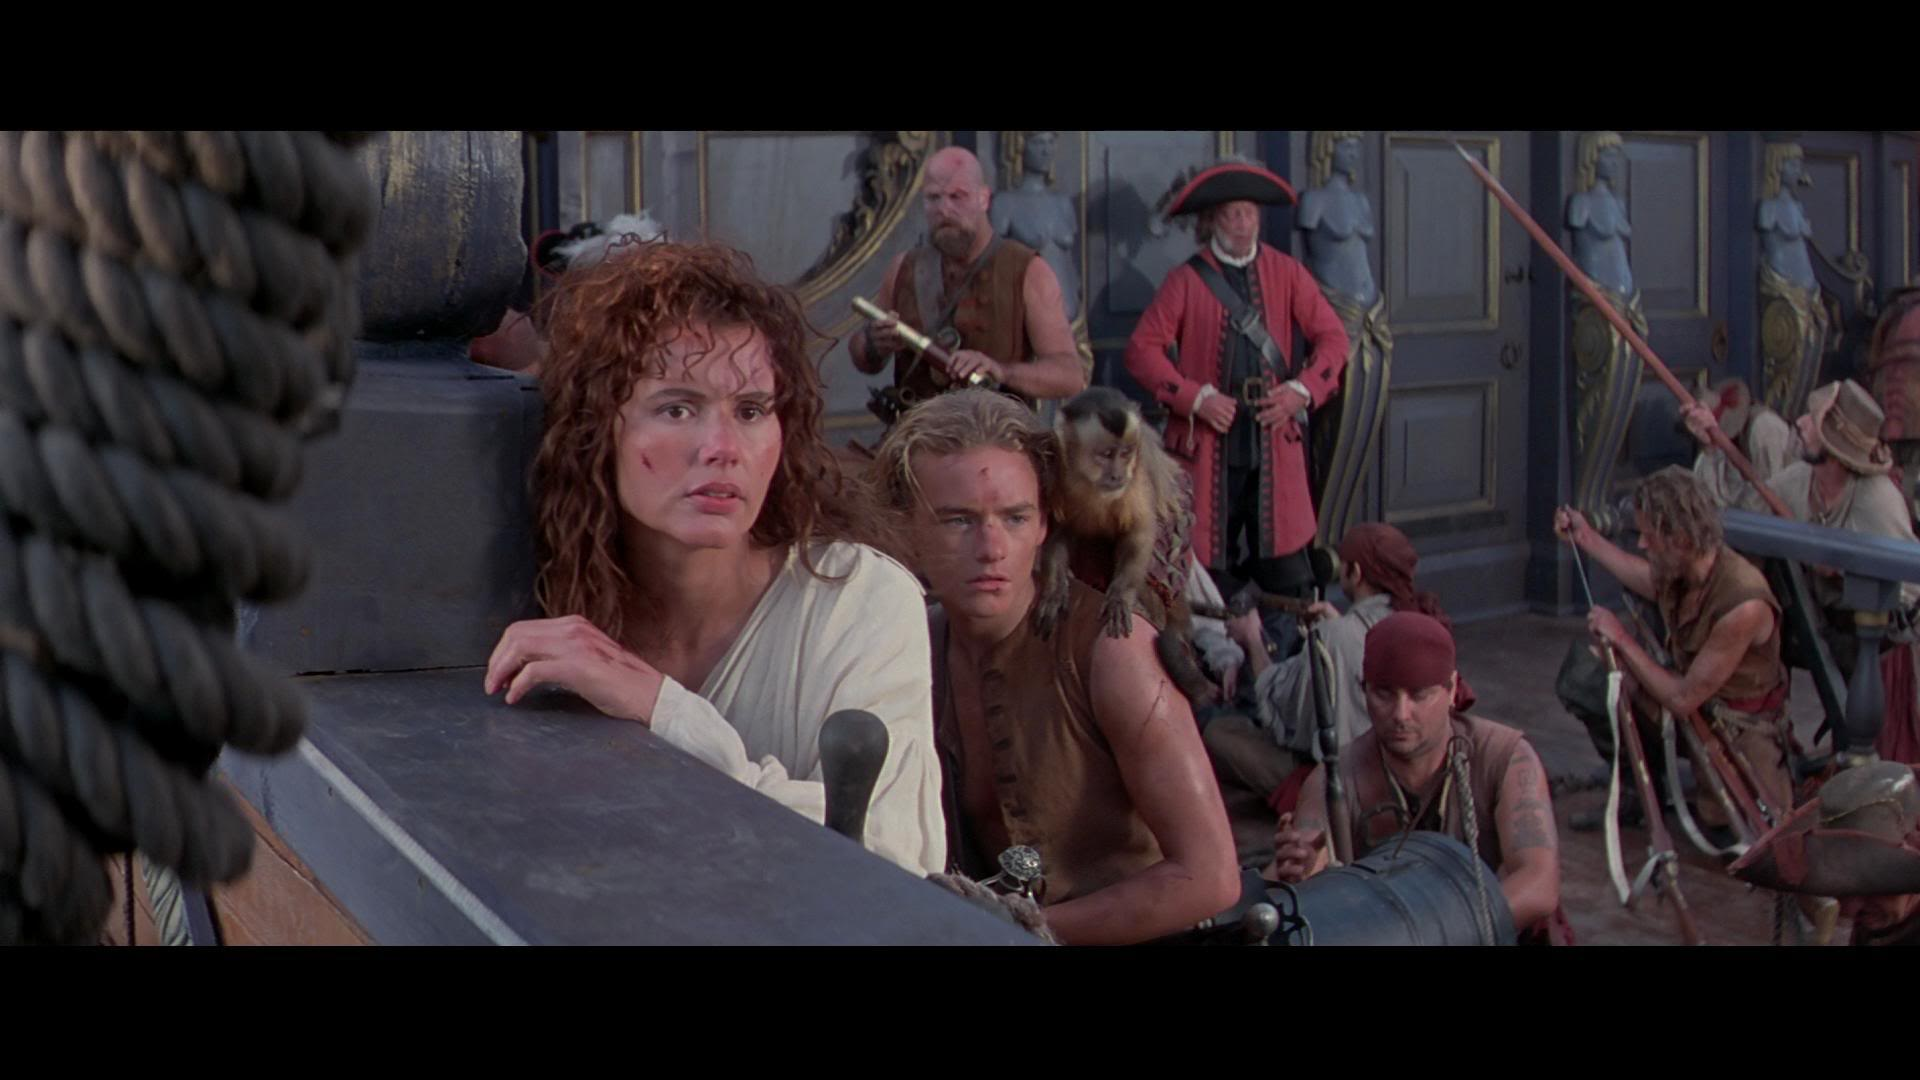 The Pirate Filme Groucho Reviews Cutthroat Island